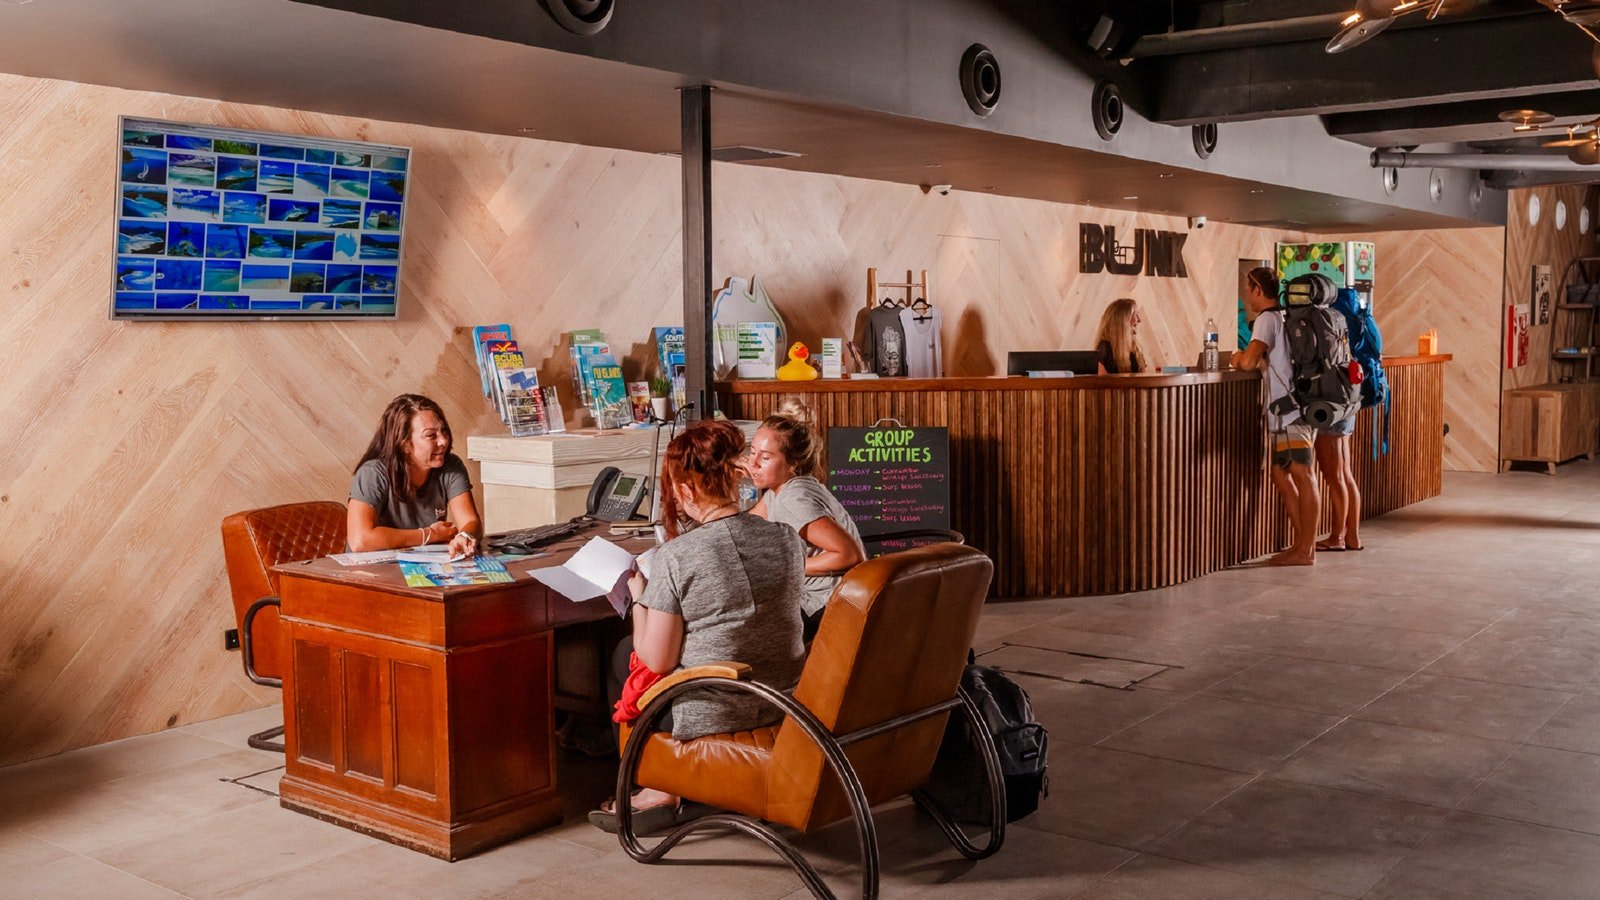 Rooms: Bunk Backpackers Surfers Paradise, Surfers Paradise